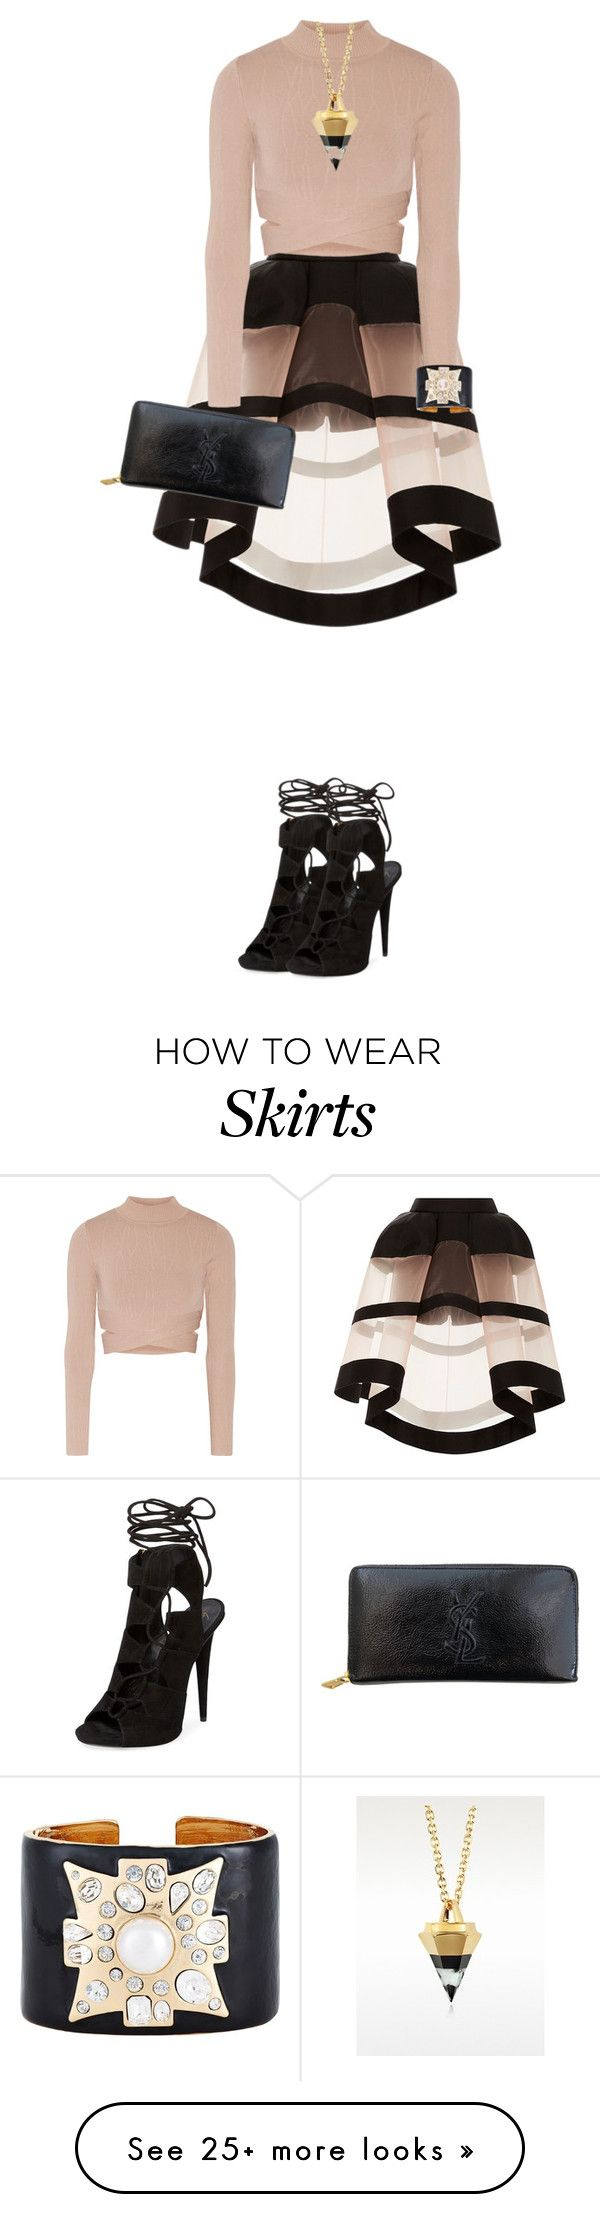 """Delpozo Skirt"" by cherieaustin on Polyvore featuring Delpozo, Jonathan Simkhai, Yves Saint Laurent, Giuseppe Zanotti, Vita Fede and Kenneth Jay Lane"